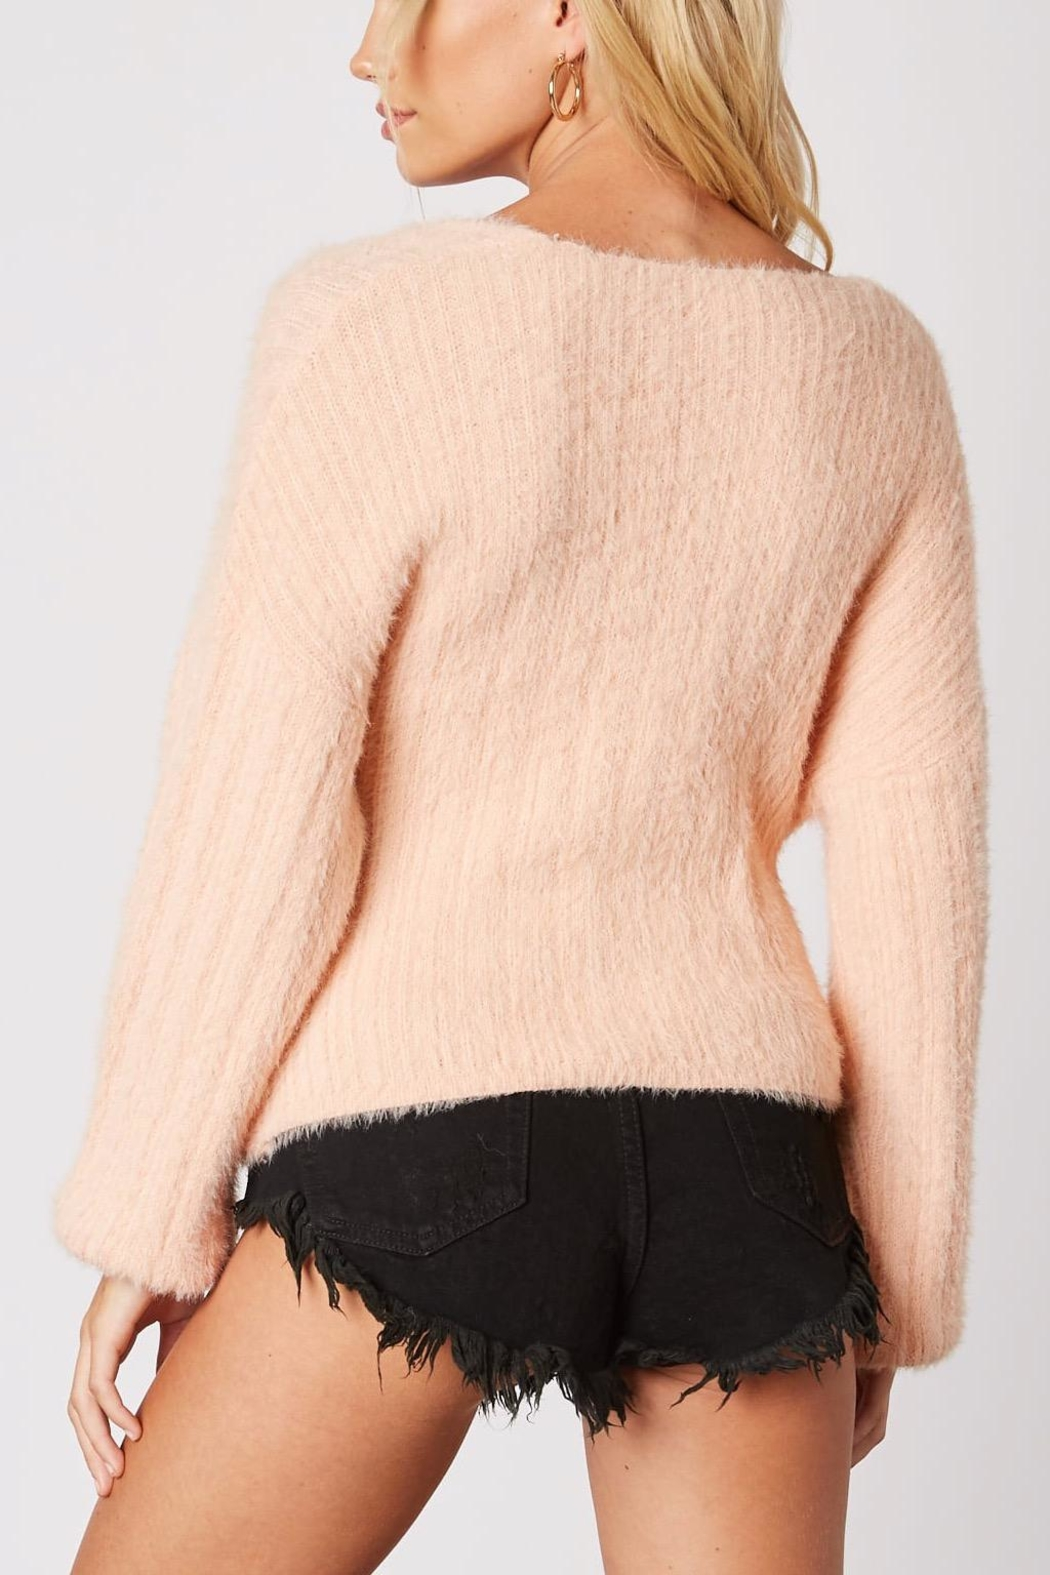 Cotton Candy LA Plunging-Loose Peach Sweater - Back Cropped Image